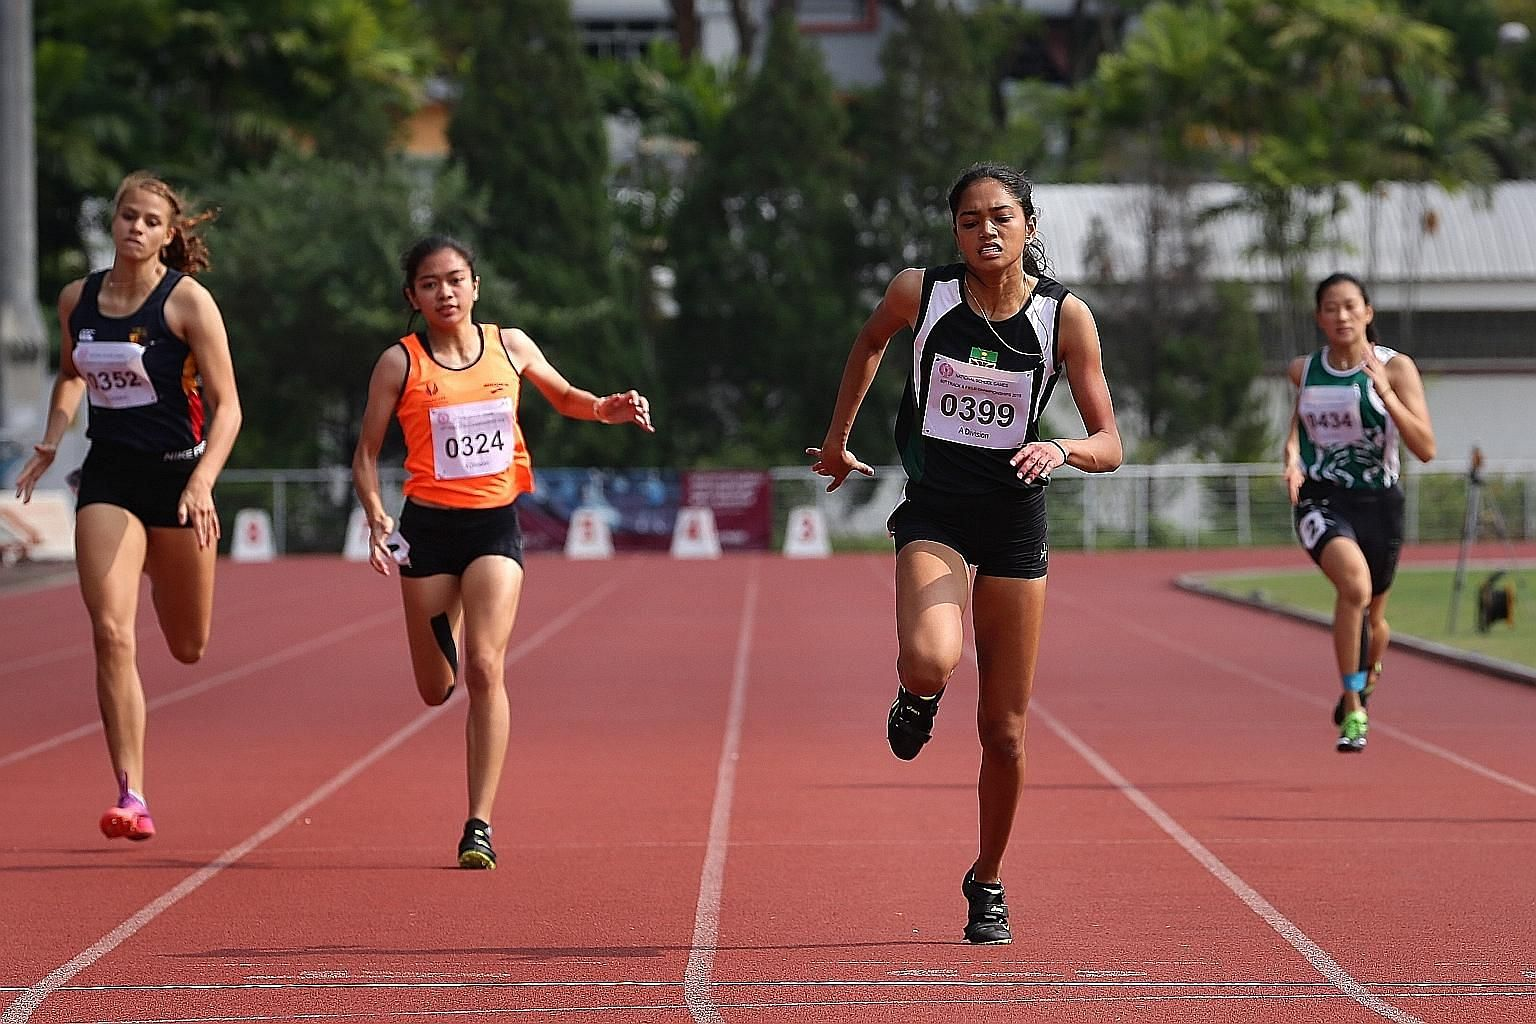 Raffles Institution's Grace Shani Anthony (second from right) winning the A Division girls' 200m final at the Choa Chu Kang Stadium in 26.09sec, just 0.09sec off her personal best.